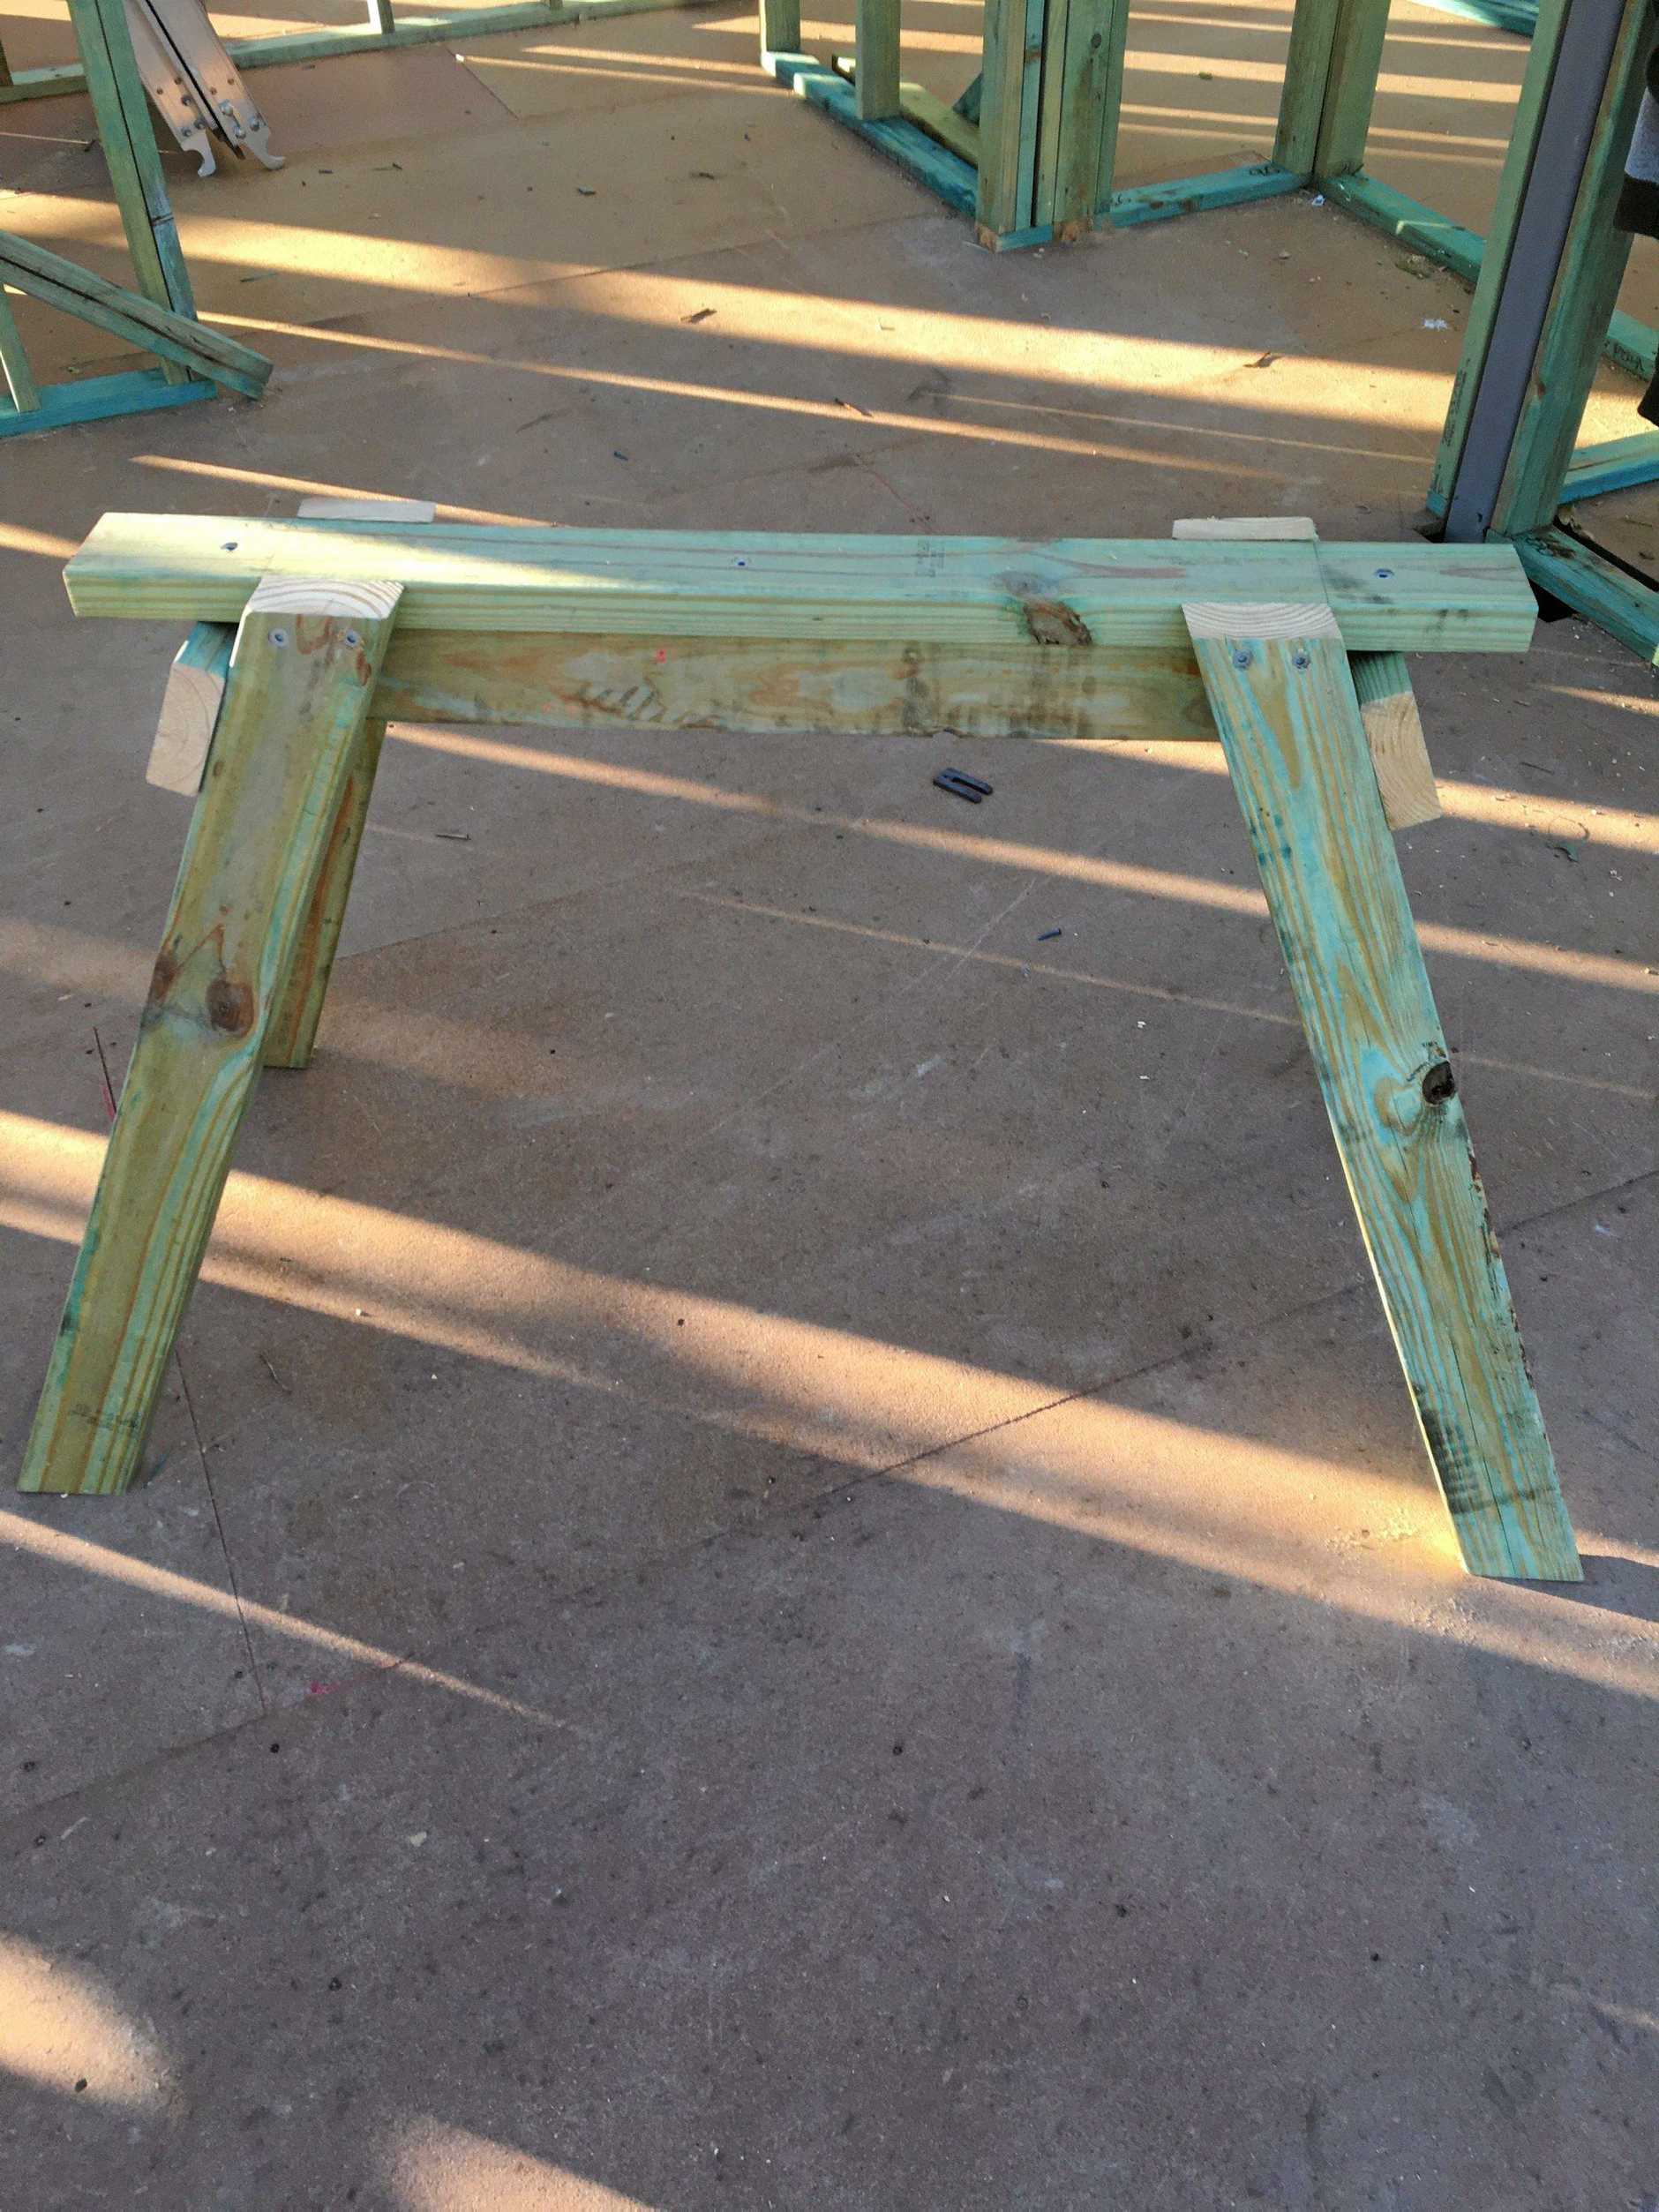 Block star Ayden Hogan shows you how to build a sawhorse form off-cuts of timber.